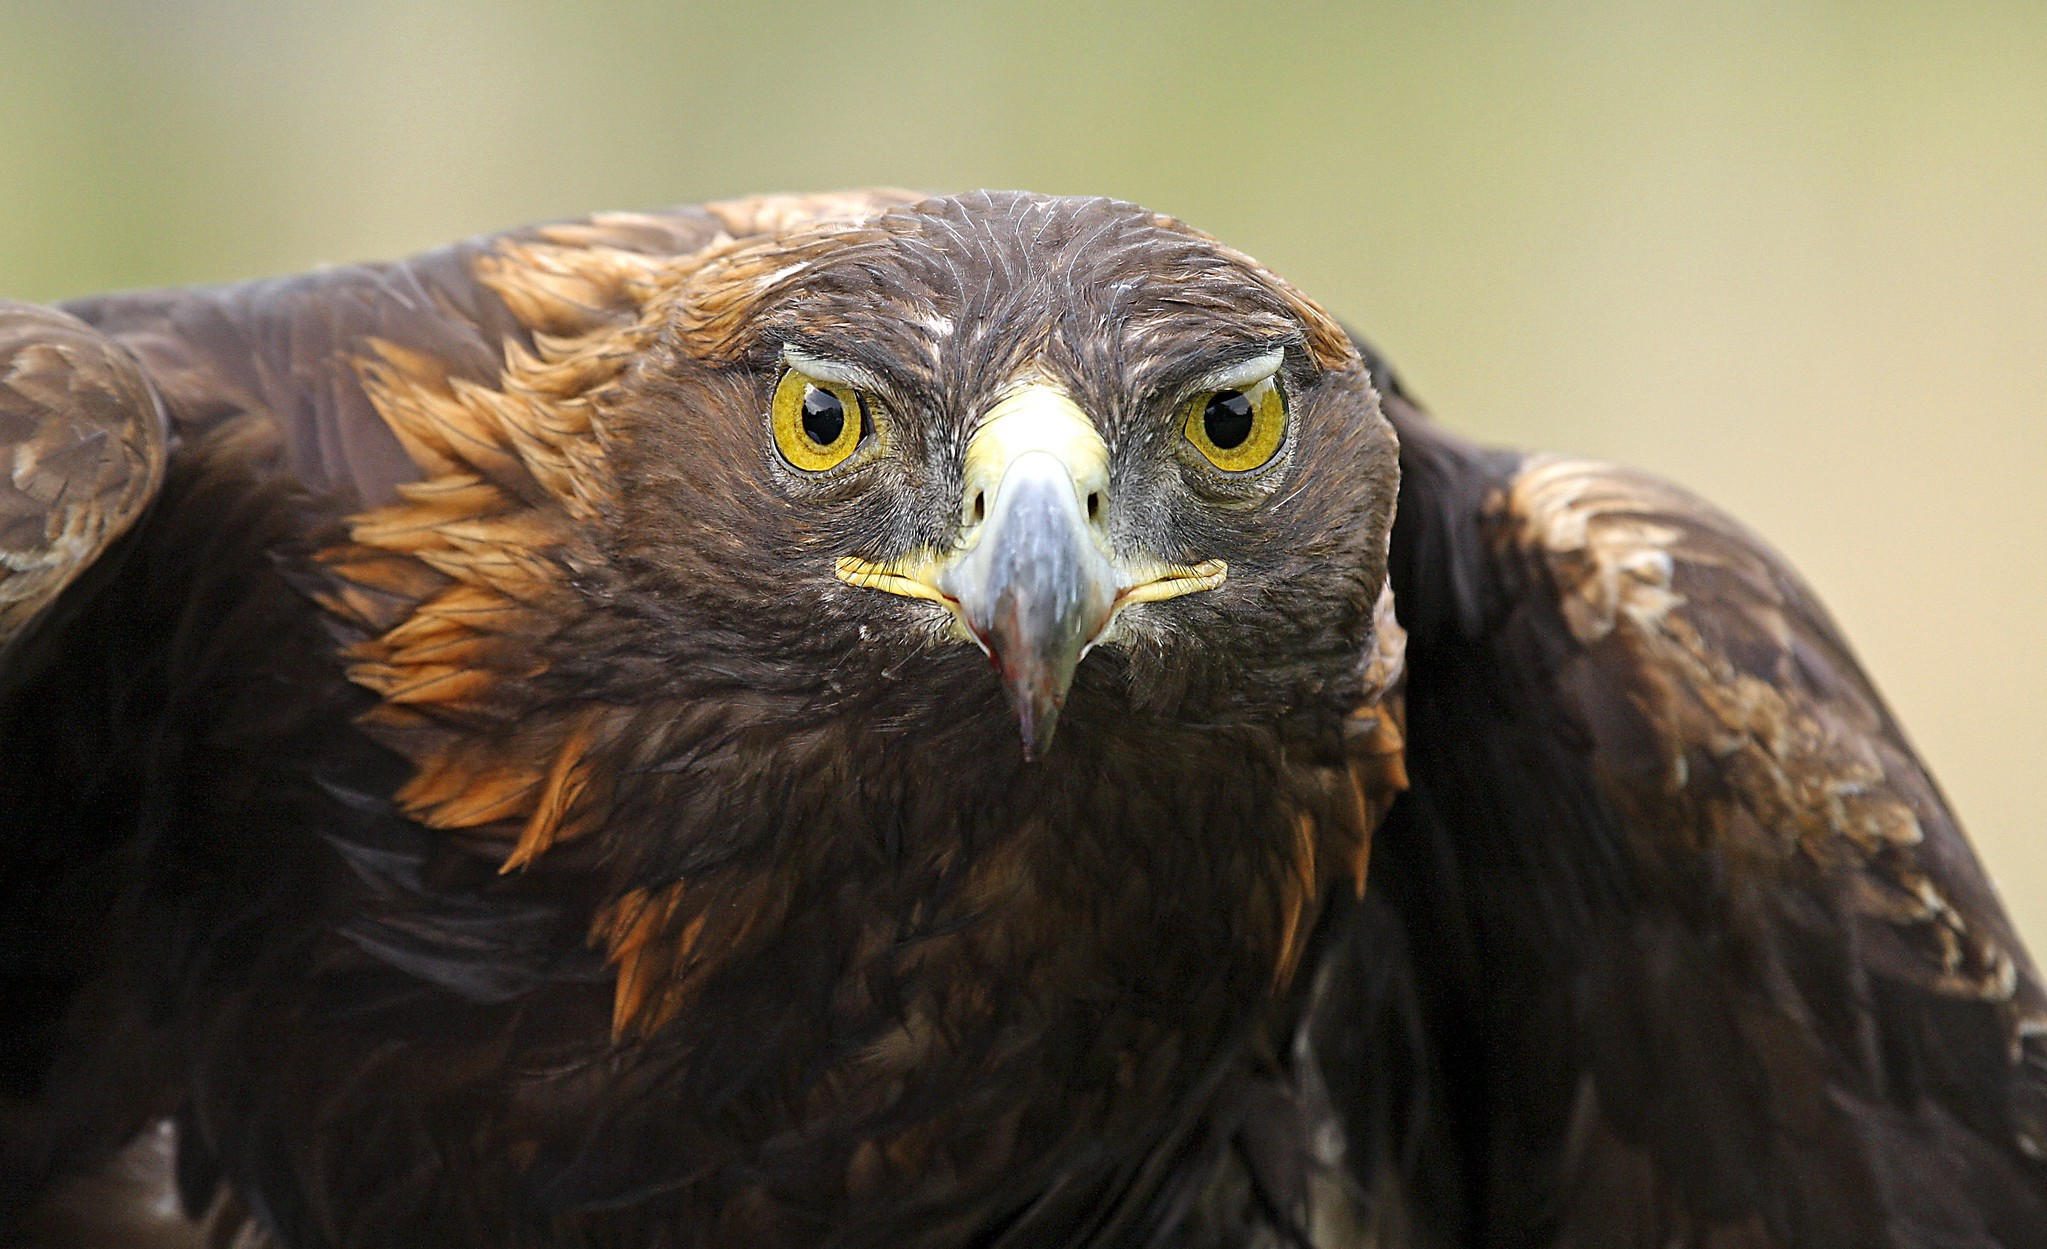 close-up of adult golden eagle with yellow eyes